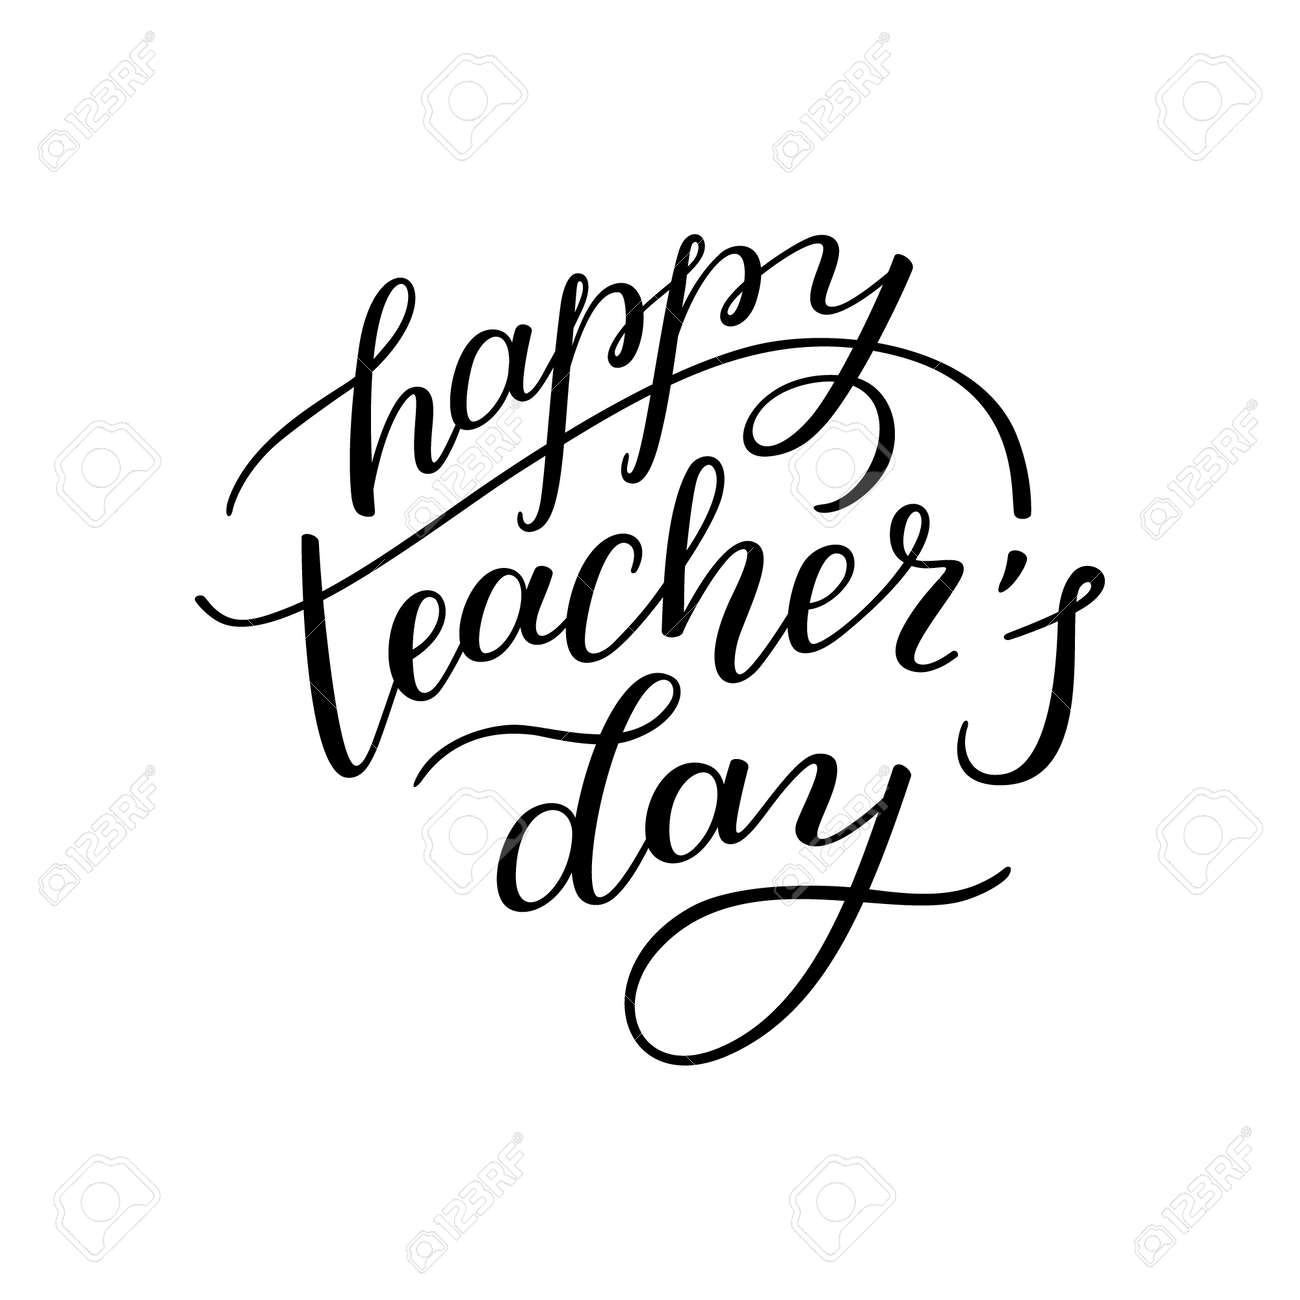 Happy teachers day hand lettering isolated on white background happy teachers day hand lettering isolated on white background template for greeting cards kristyandbryce Image collections